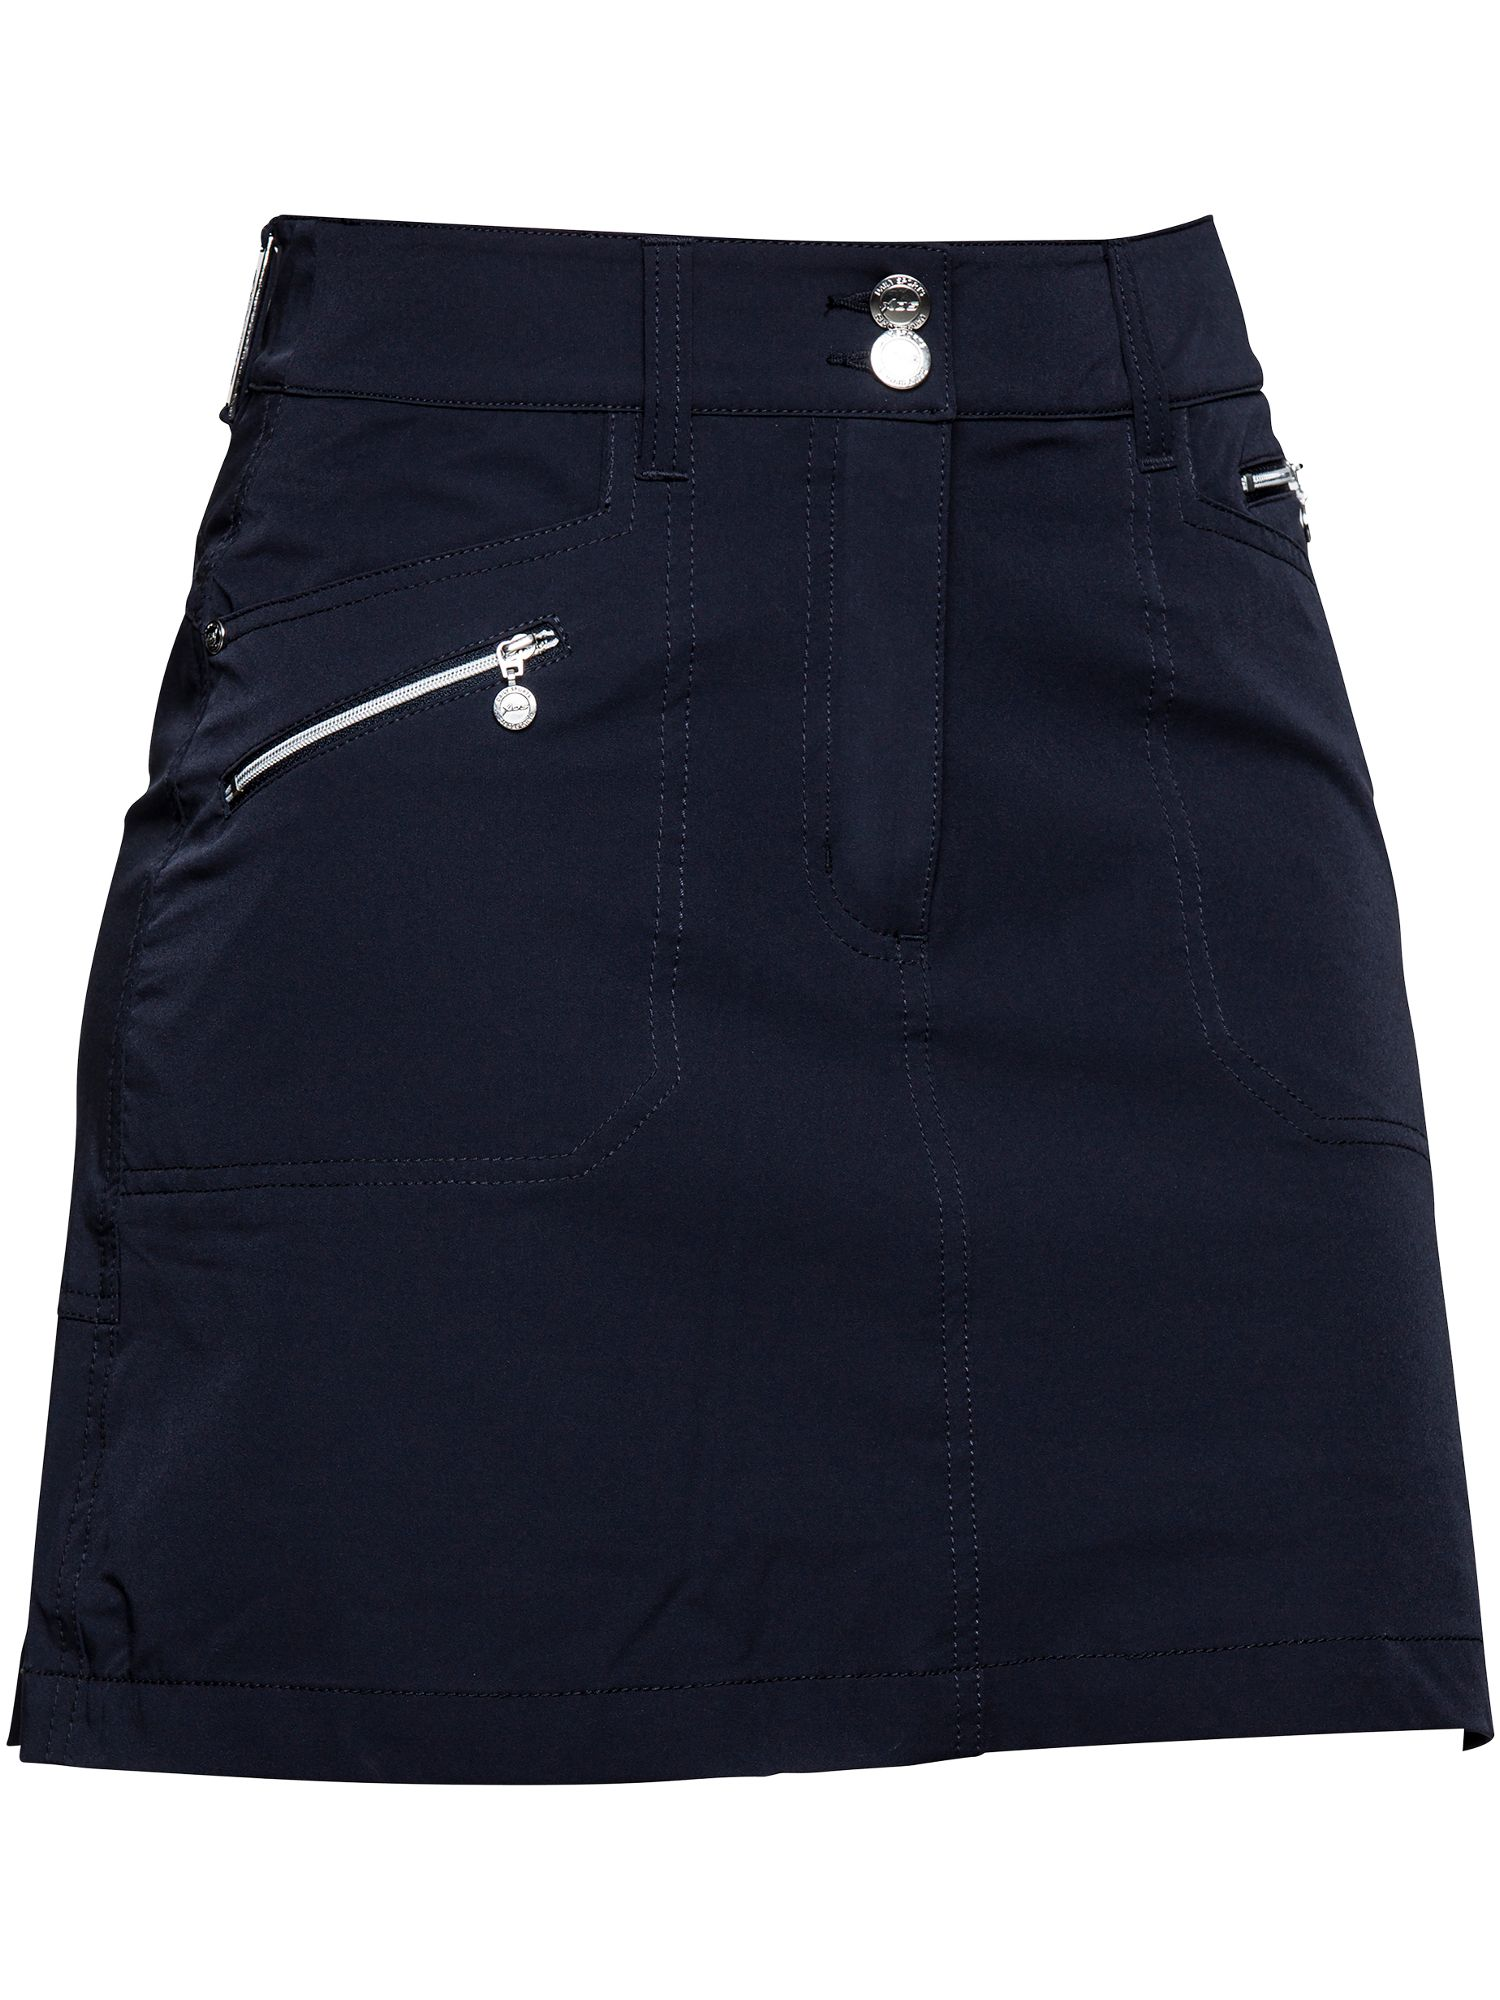 Daily Sports Daily Sports Miracle skort, Navy